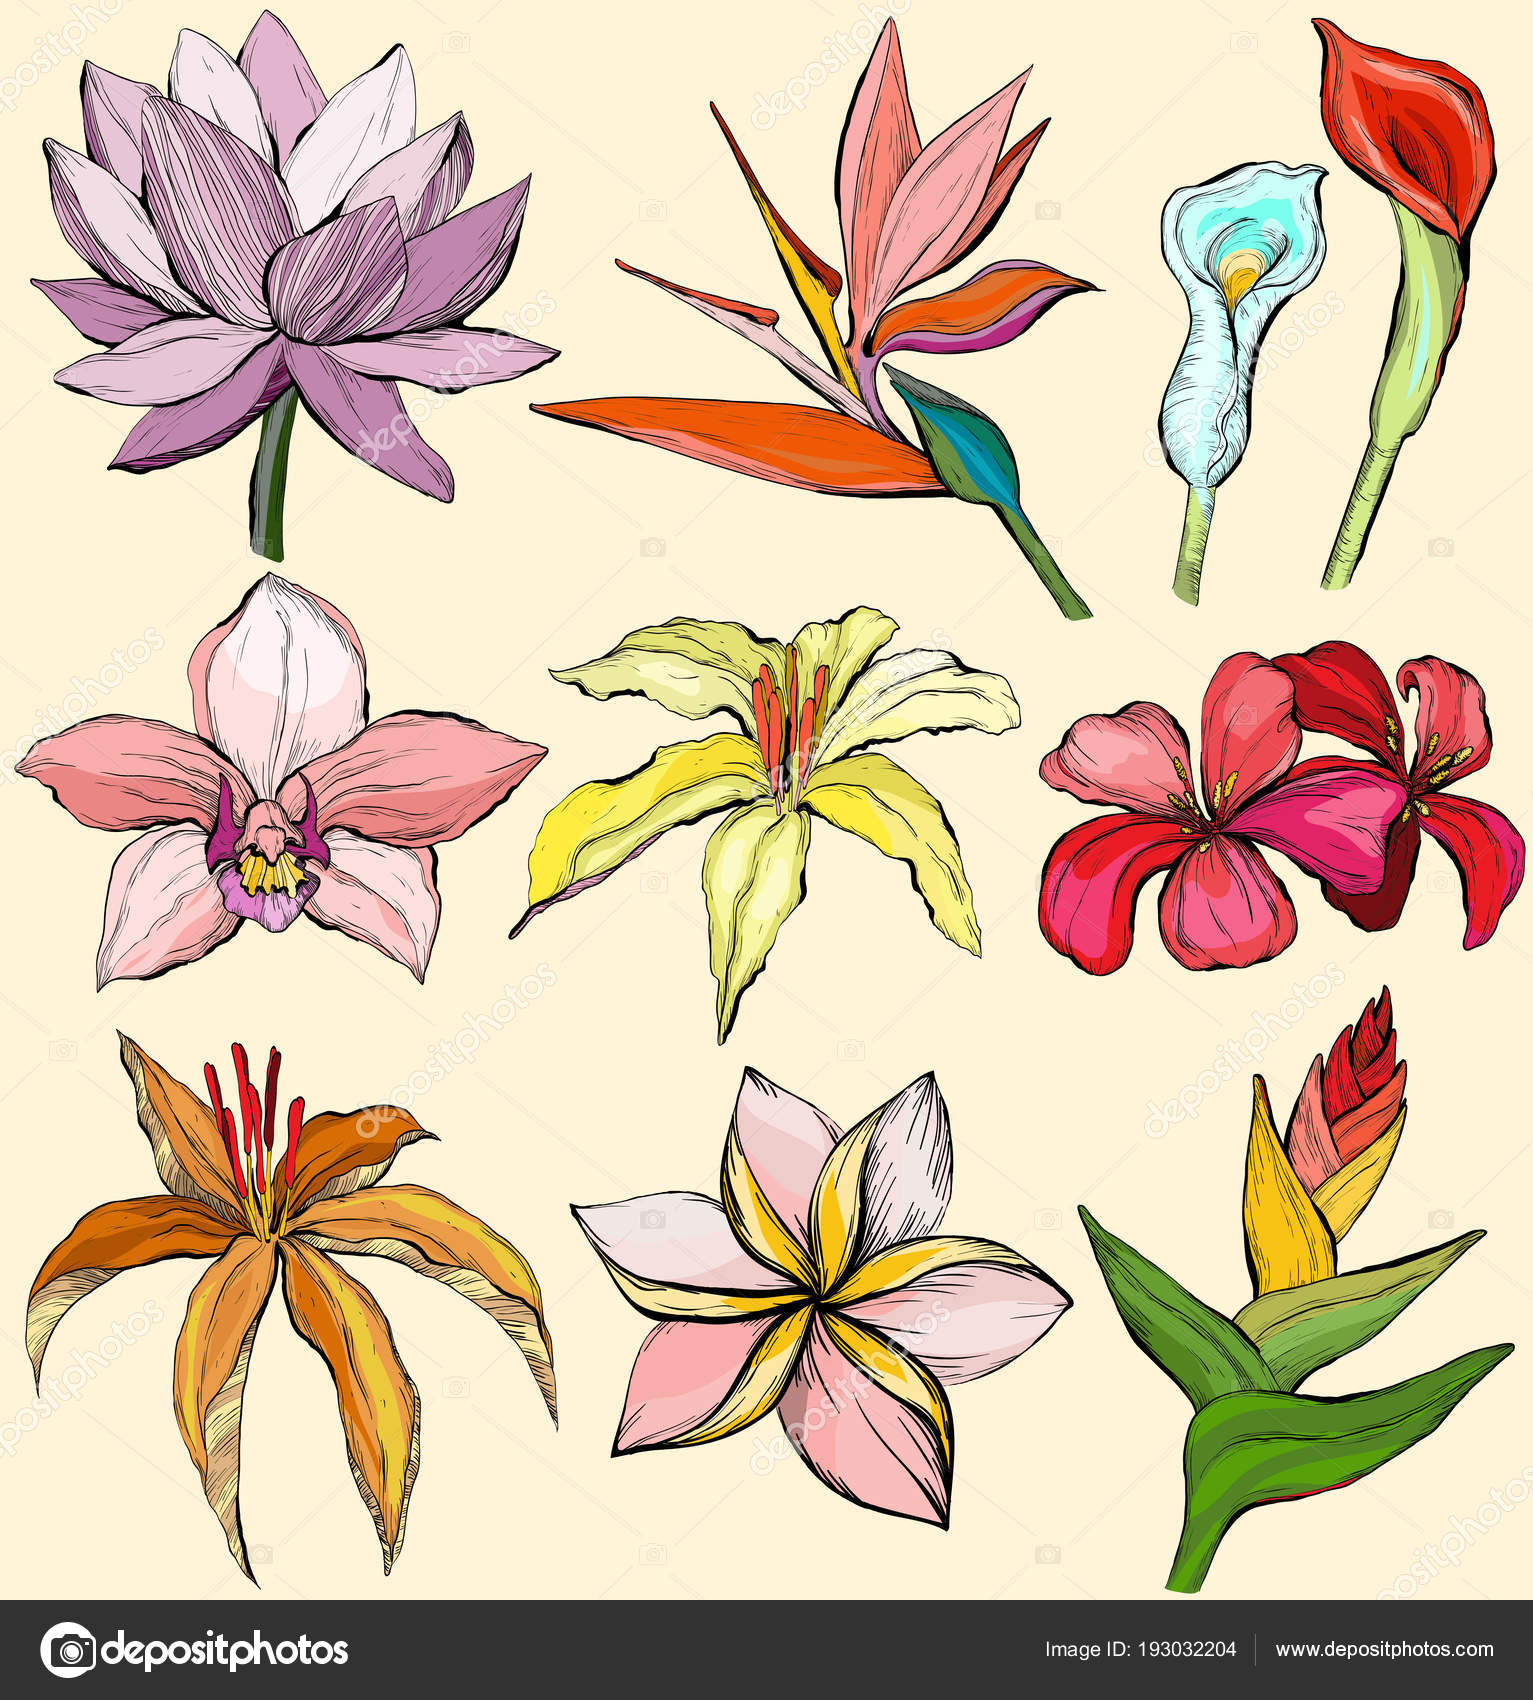 Tropical flowers water lily orchid clematis plumeria tropical flowers water lily orchid clematis plumeria frangipani bird of paradise and hibiscus vector illustration vector by mirifada izmirmasajfo